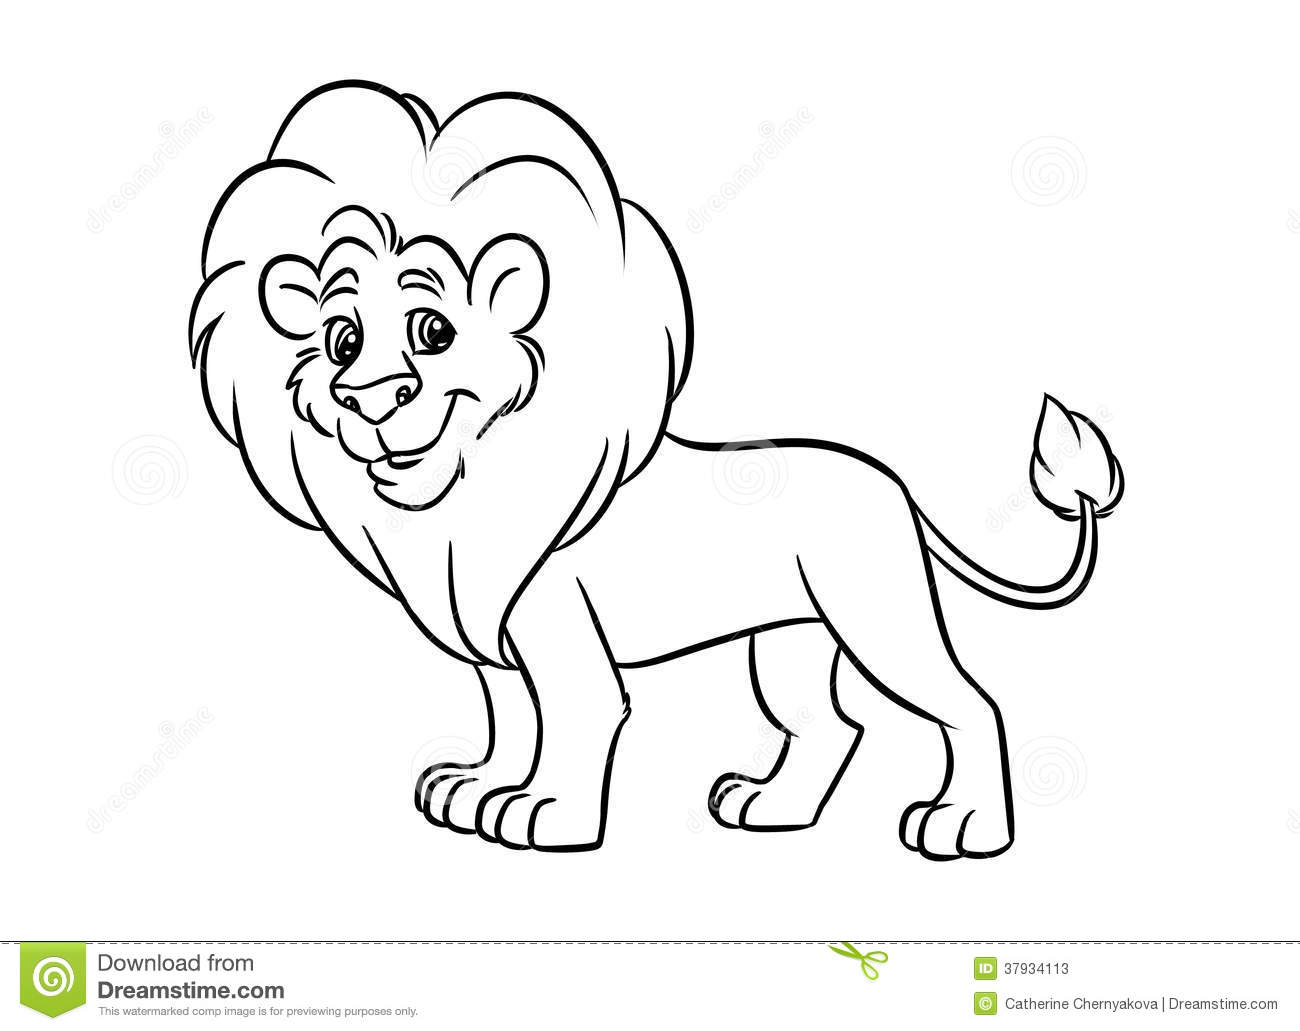 graffiti coloring pages leo - photo#31